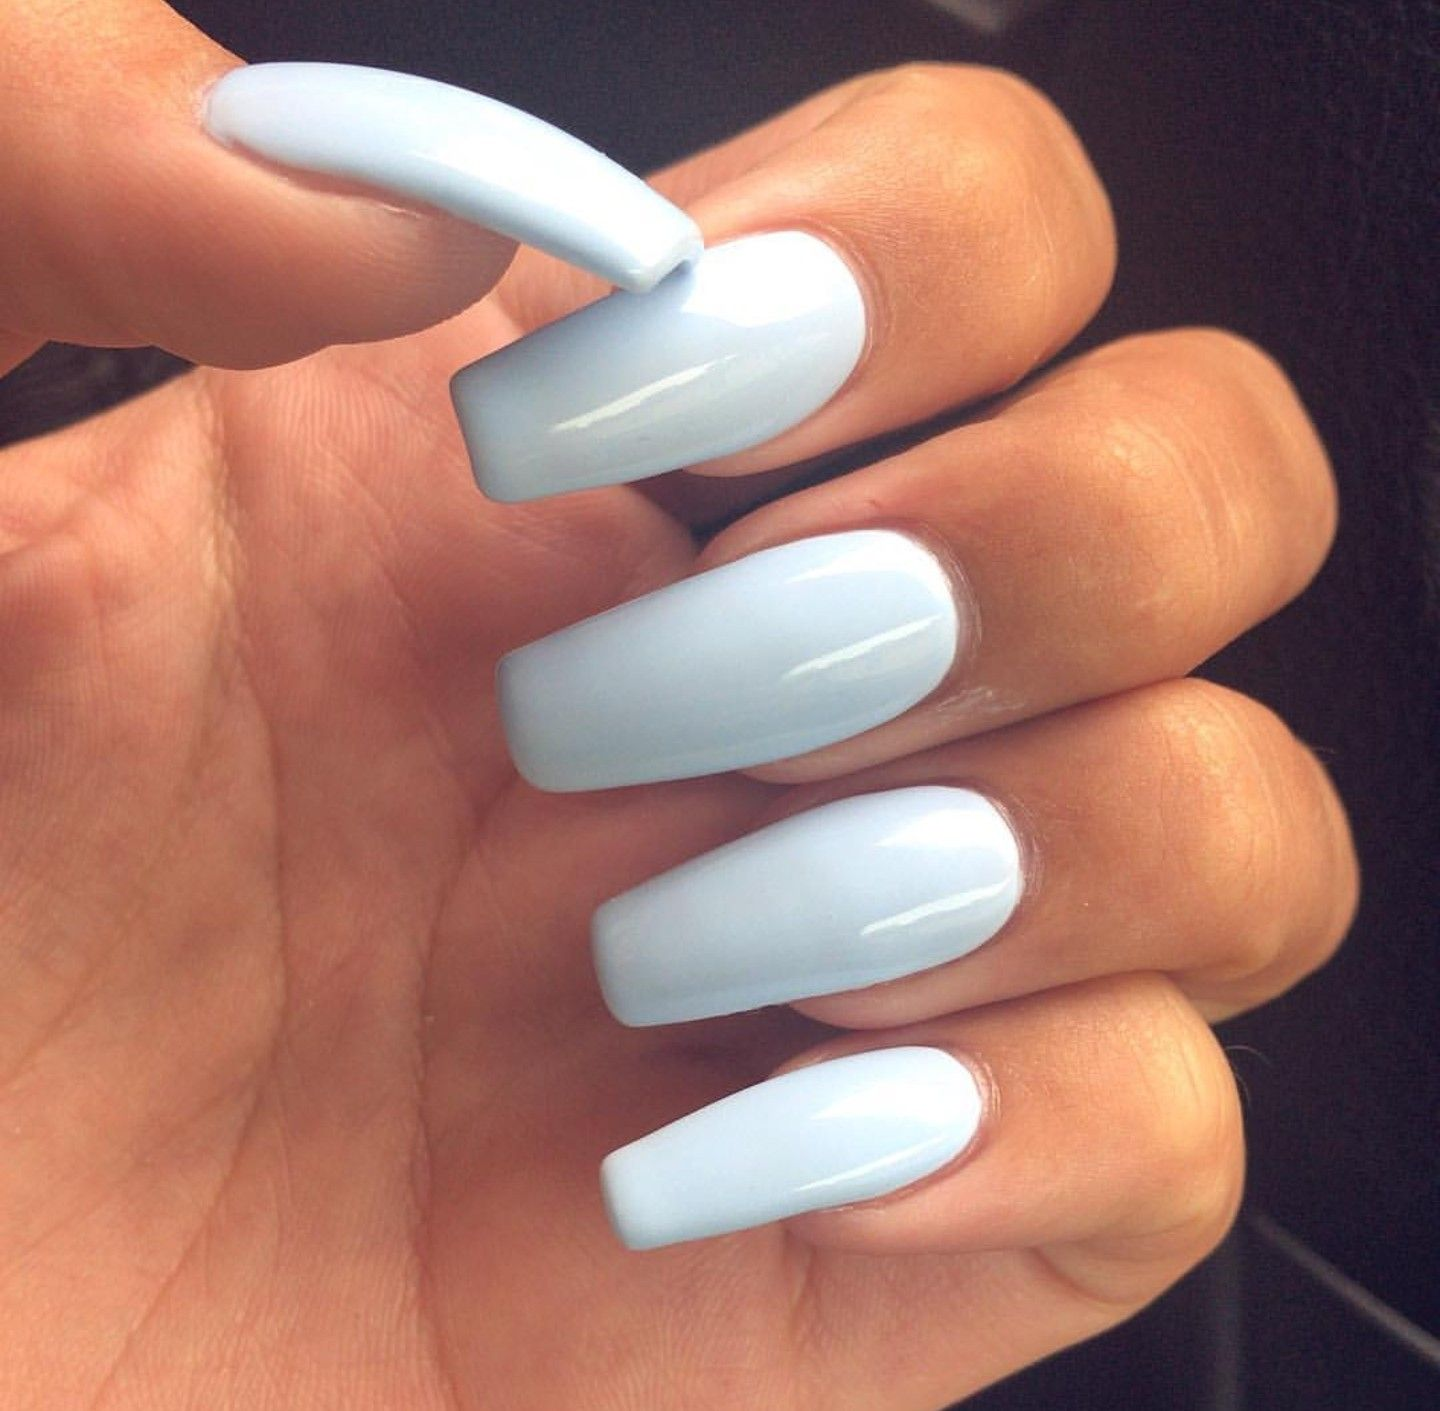 Pin by nerea del on uñas pinterest twitter acrylics and